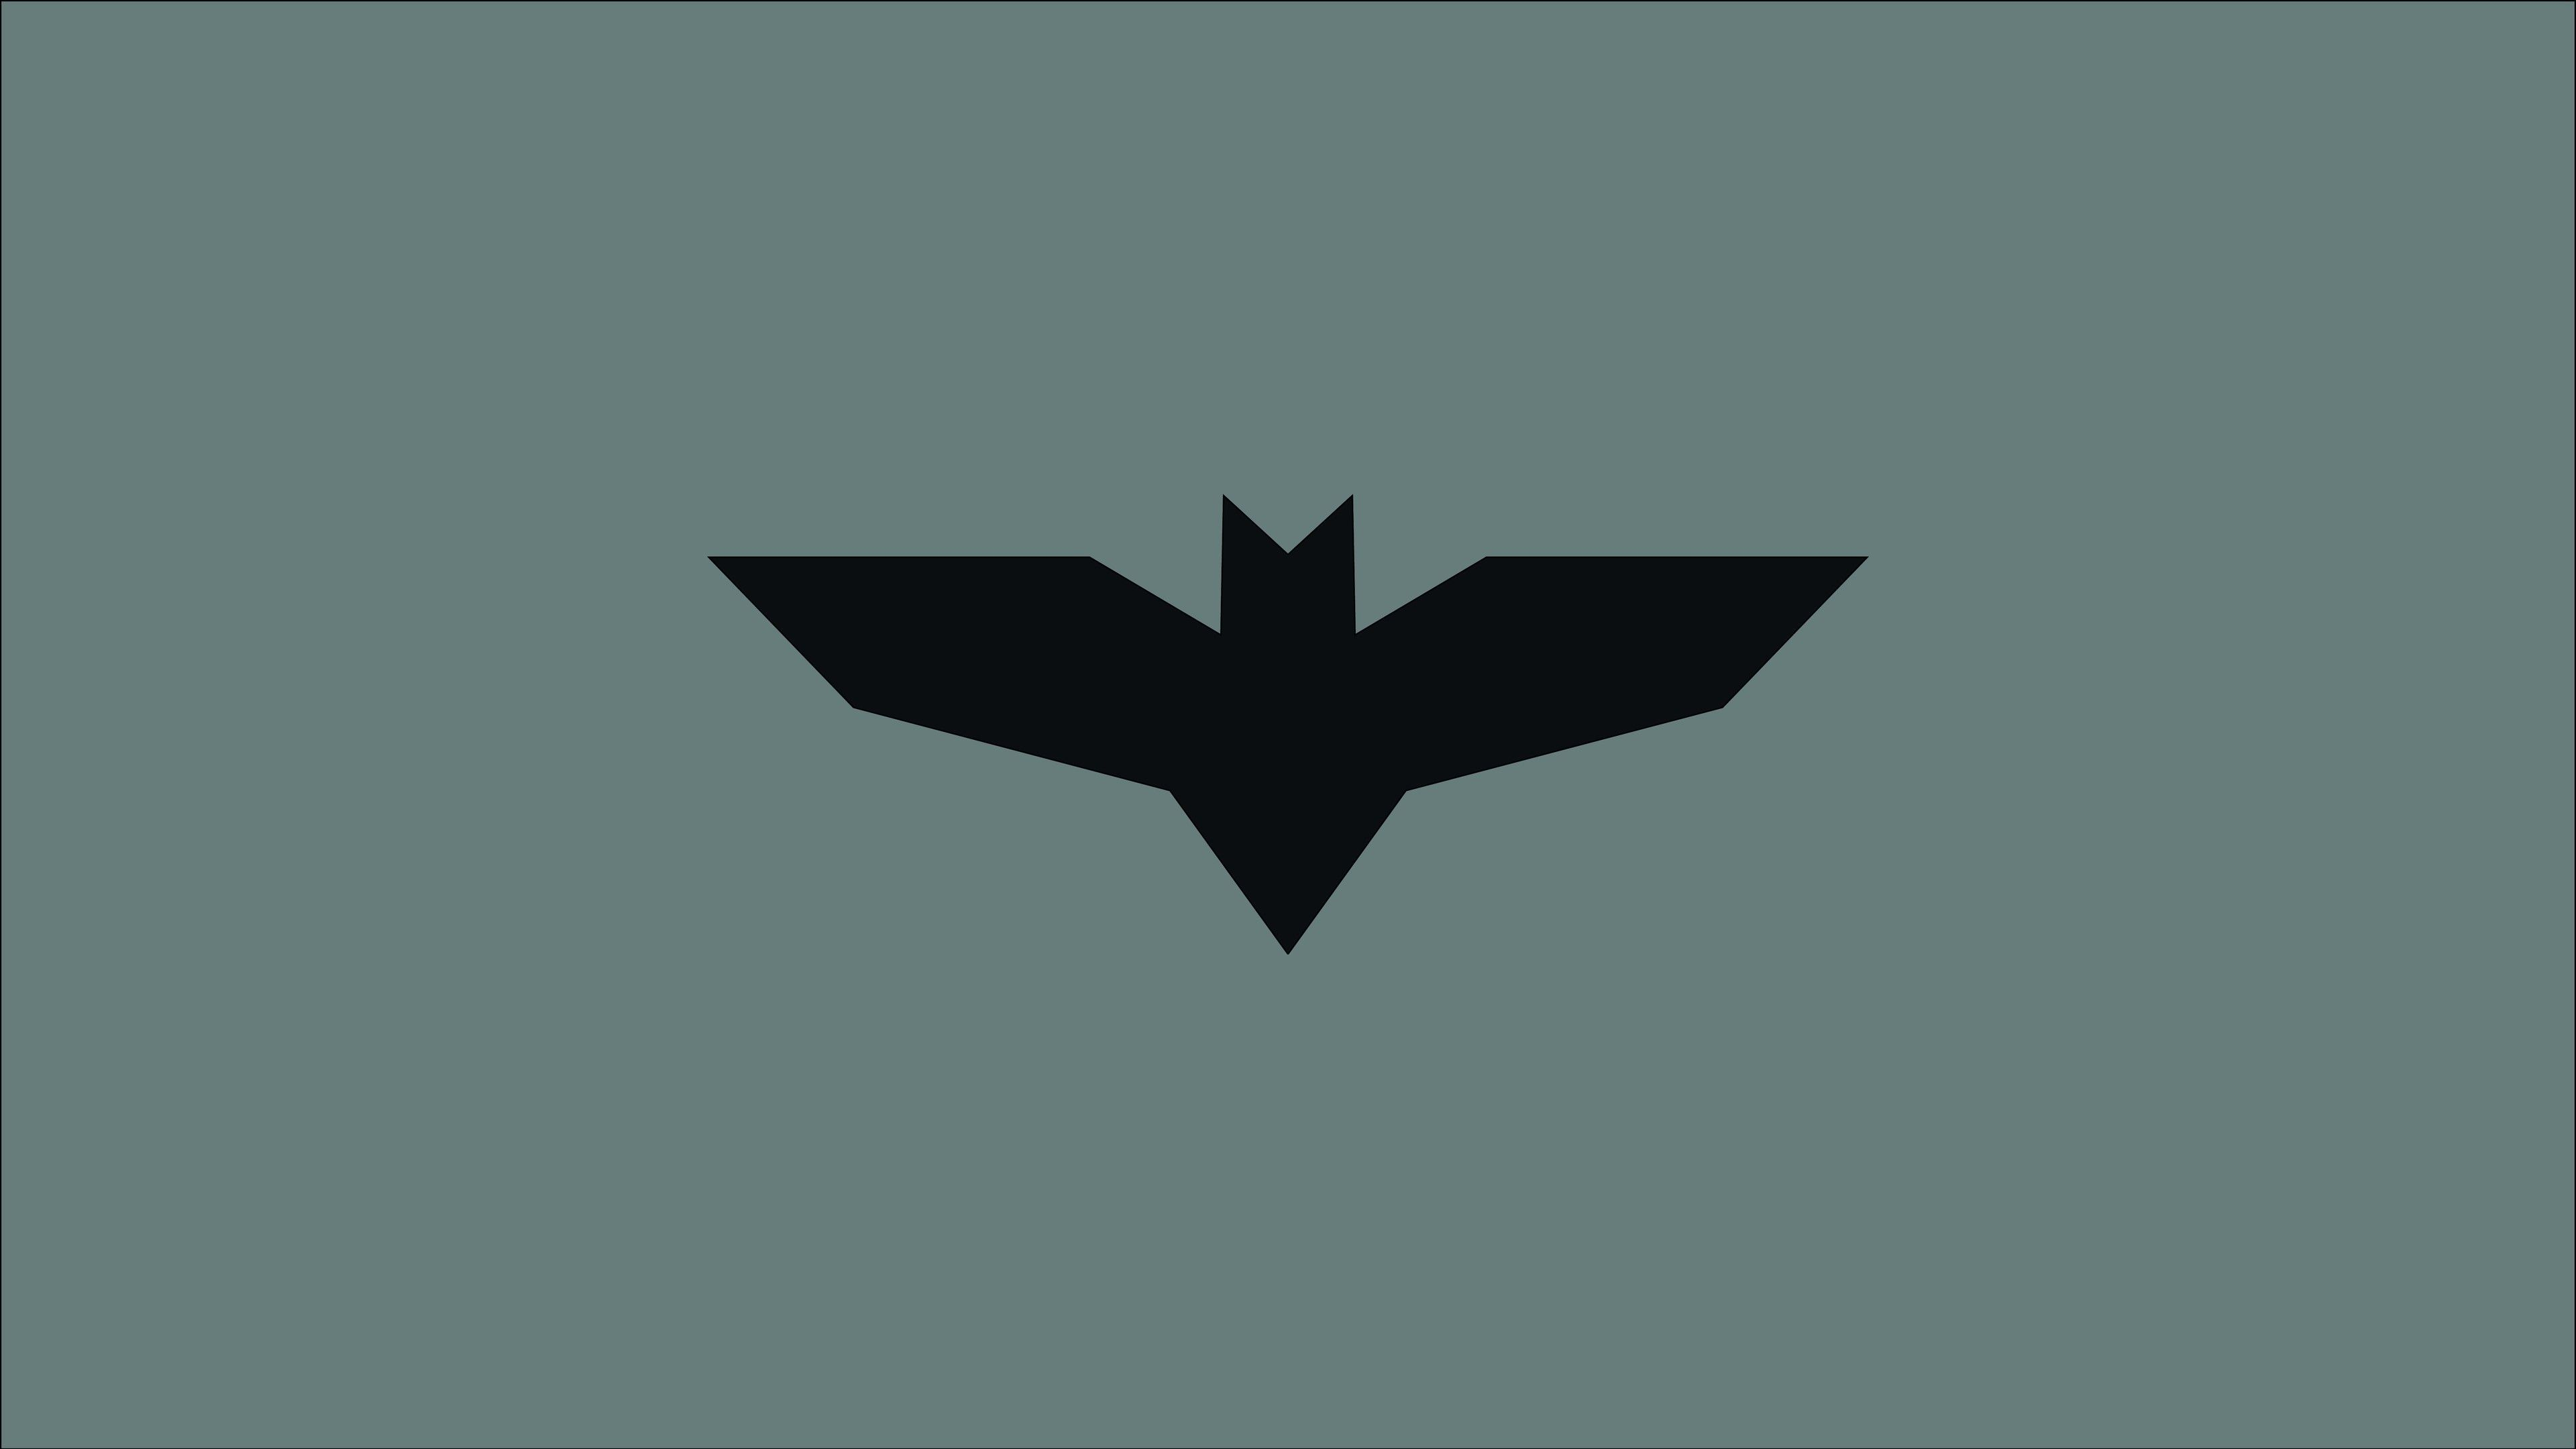 Justice League Minimalist Wallpapers - Top Free Justice ...